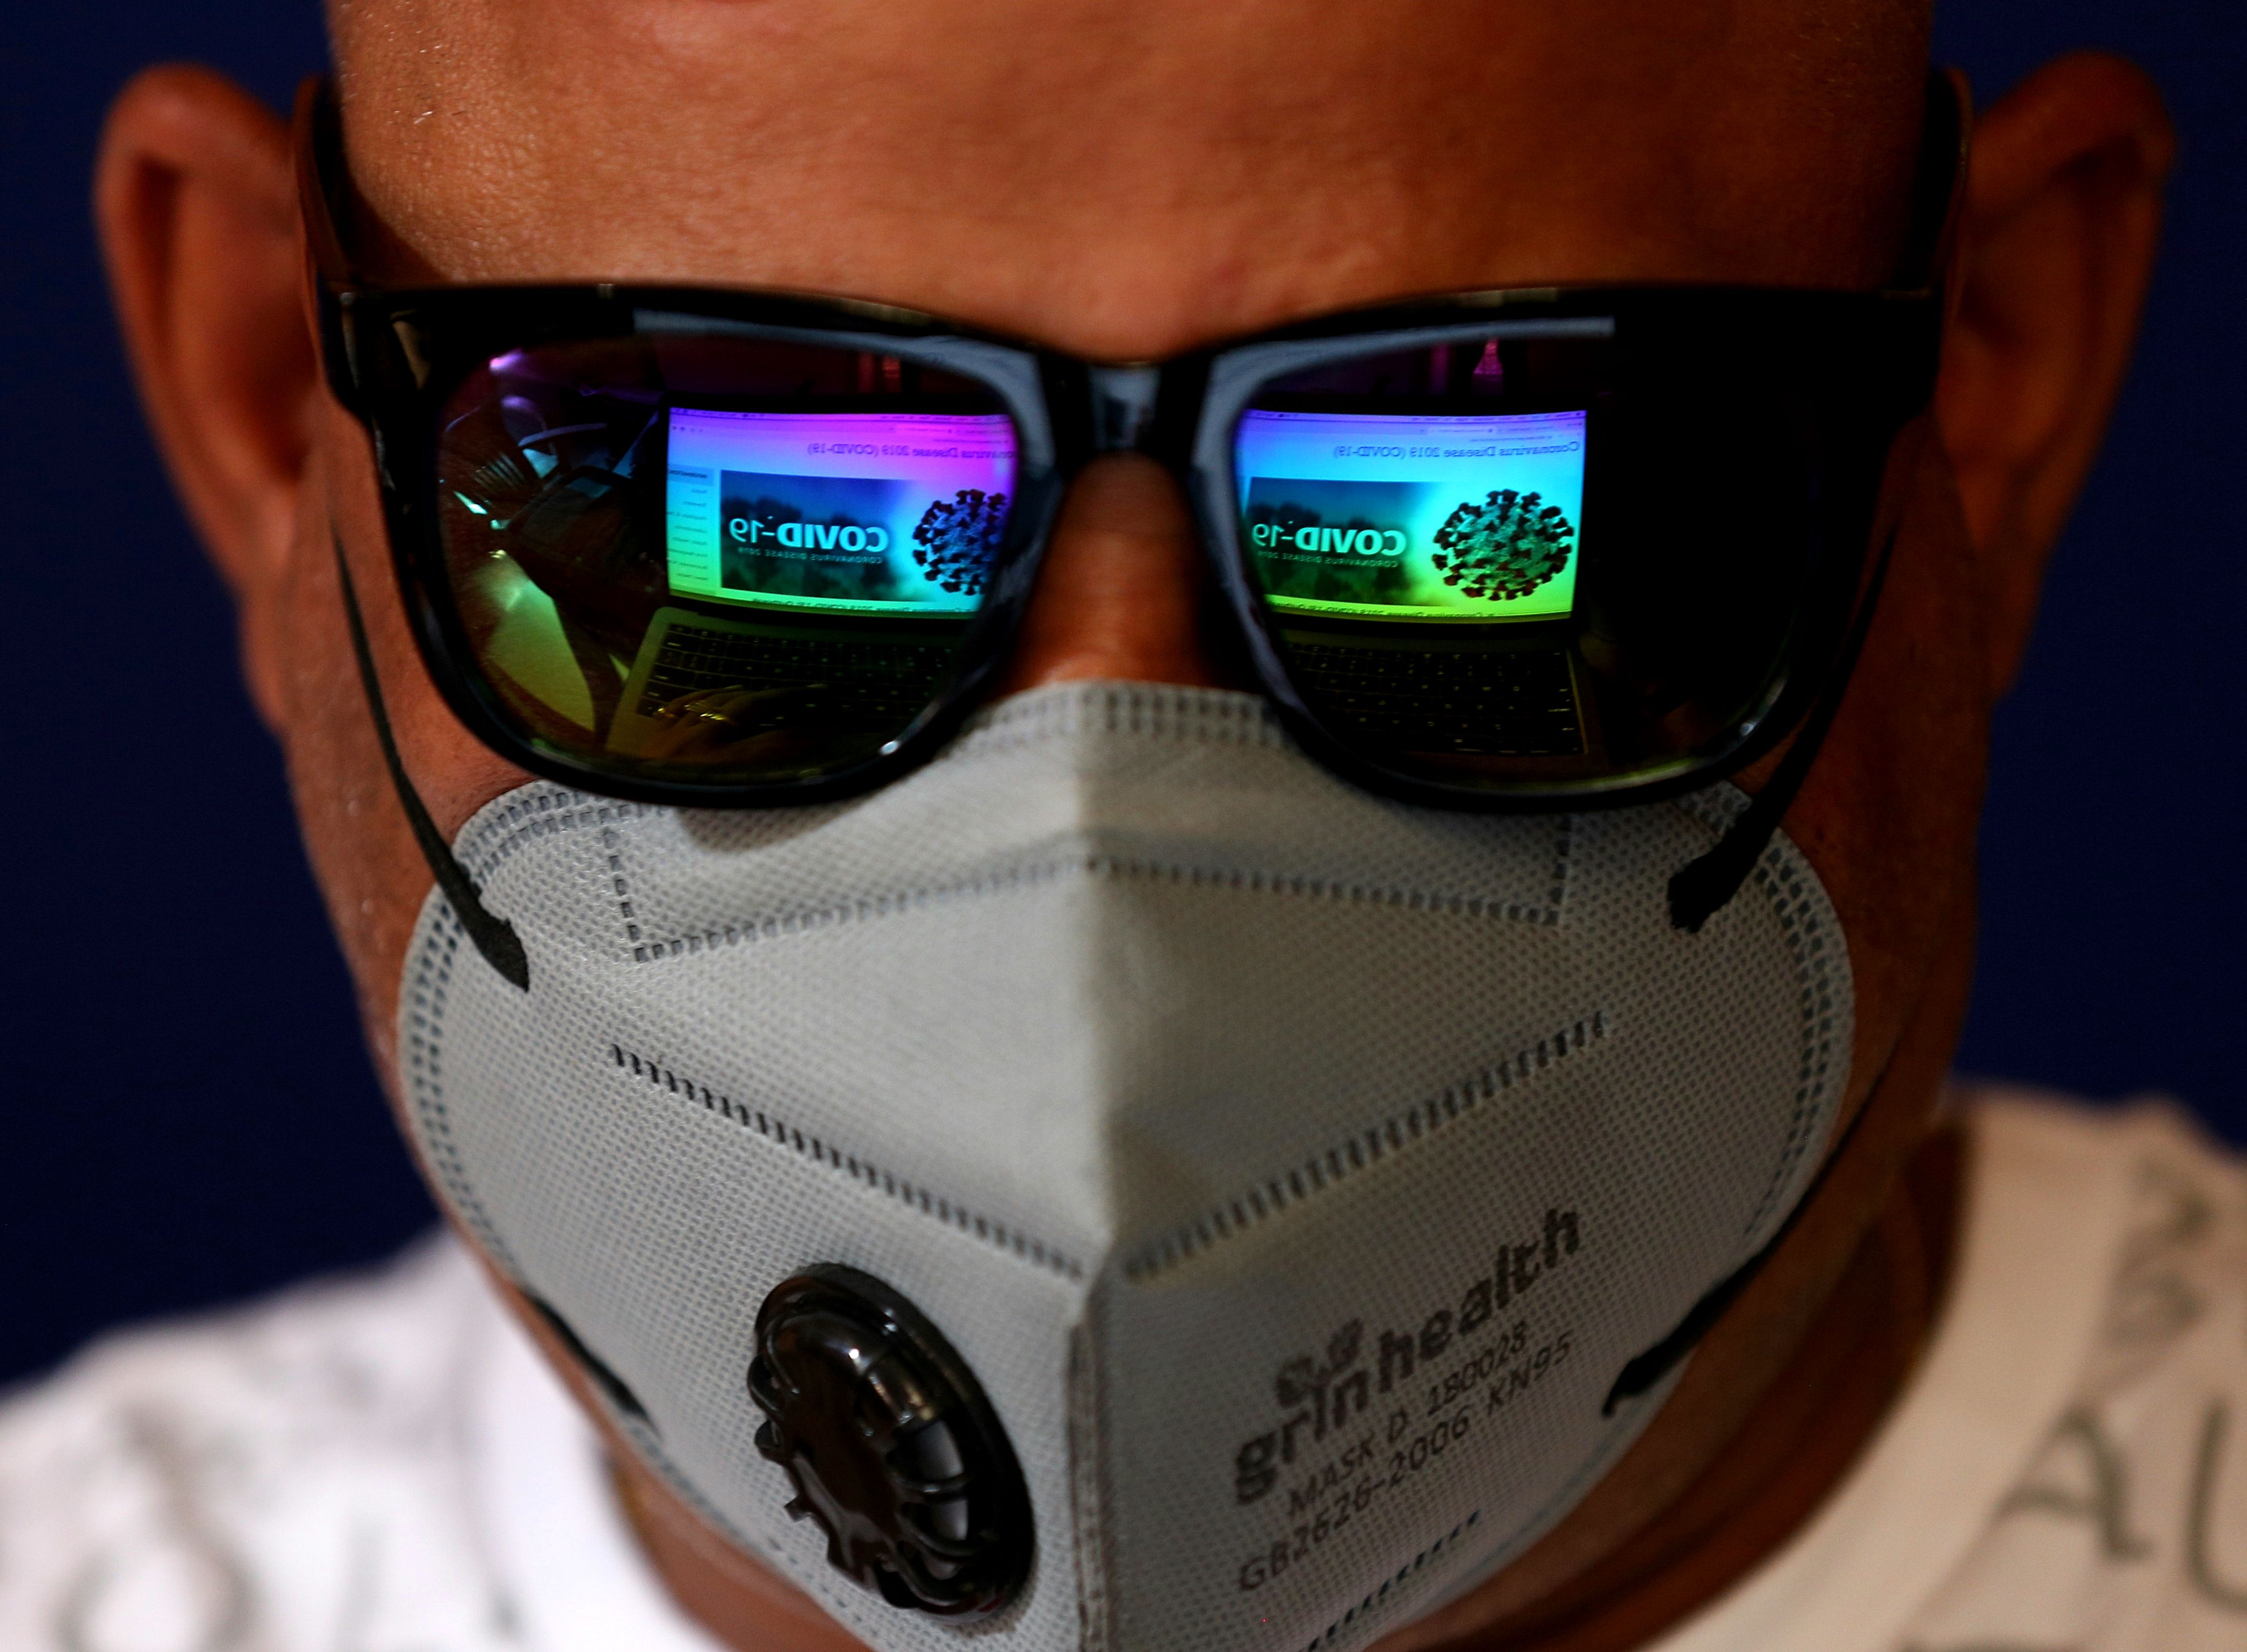 The screen of a laptop showing news about COVID-19 is reflected in the sunglasses of a man wearing a mask as a precaution against the coronavirus outbreak, in Bangalore, India, 04 March 2020. A 25-year-old software engineer from Bangalore is currently being tested after showing symptoms of a potential coronavirus infection. According to media reports, at least 15 Italian tourists and their Indian driver have tested positive for COVID-19.Preventative measures against novel coronavirus outbreak, in Bangalore, India - 04 Mar 2020